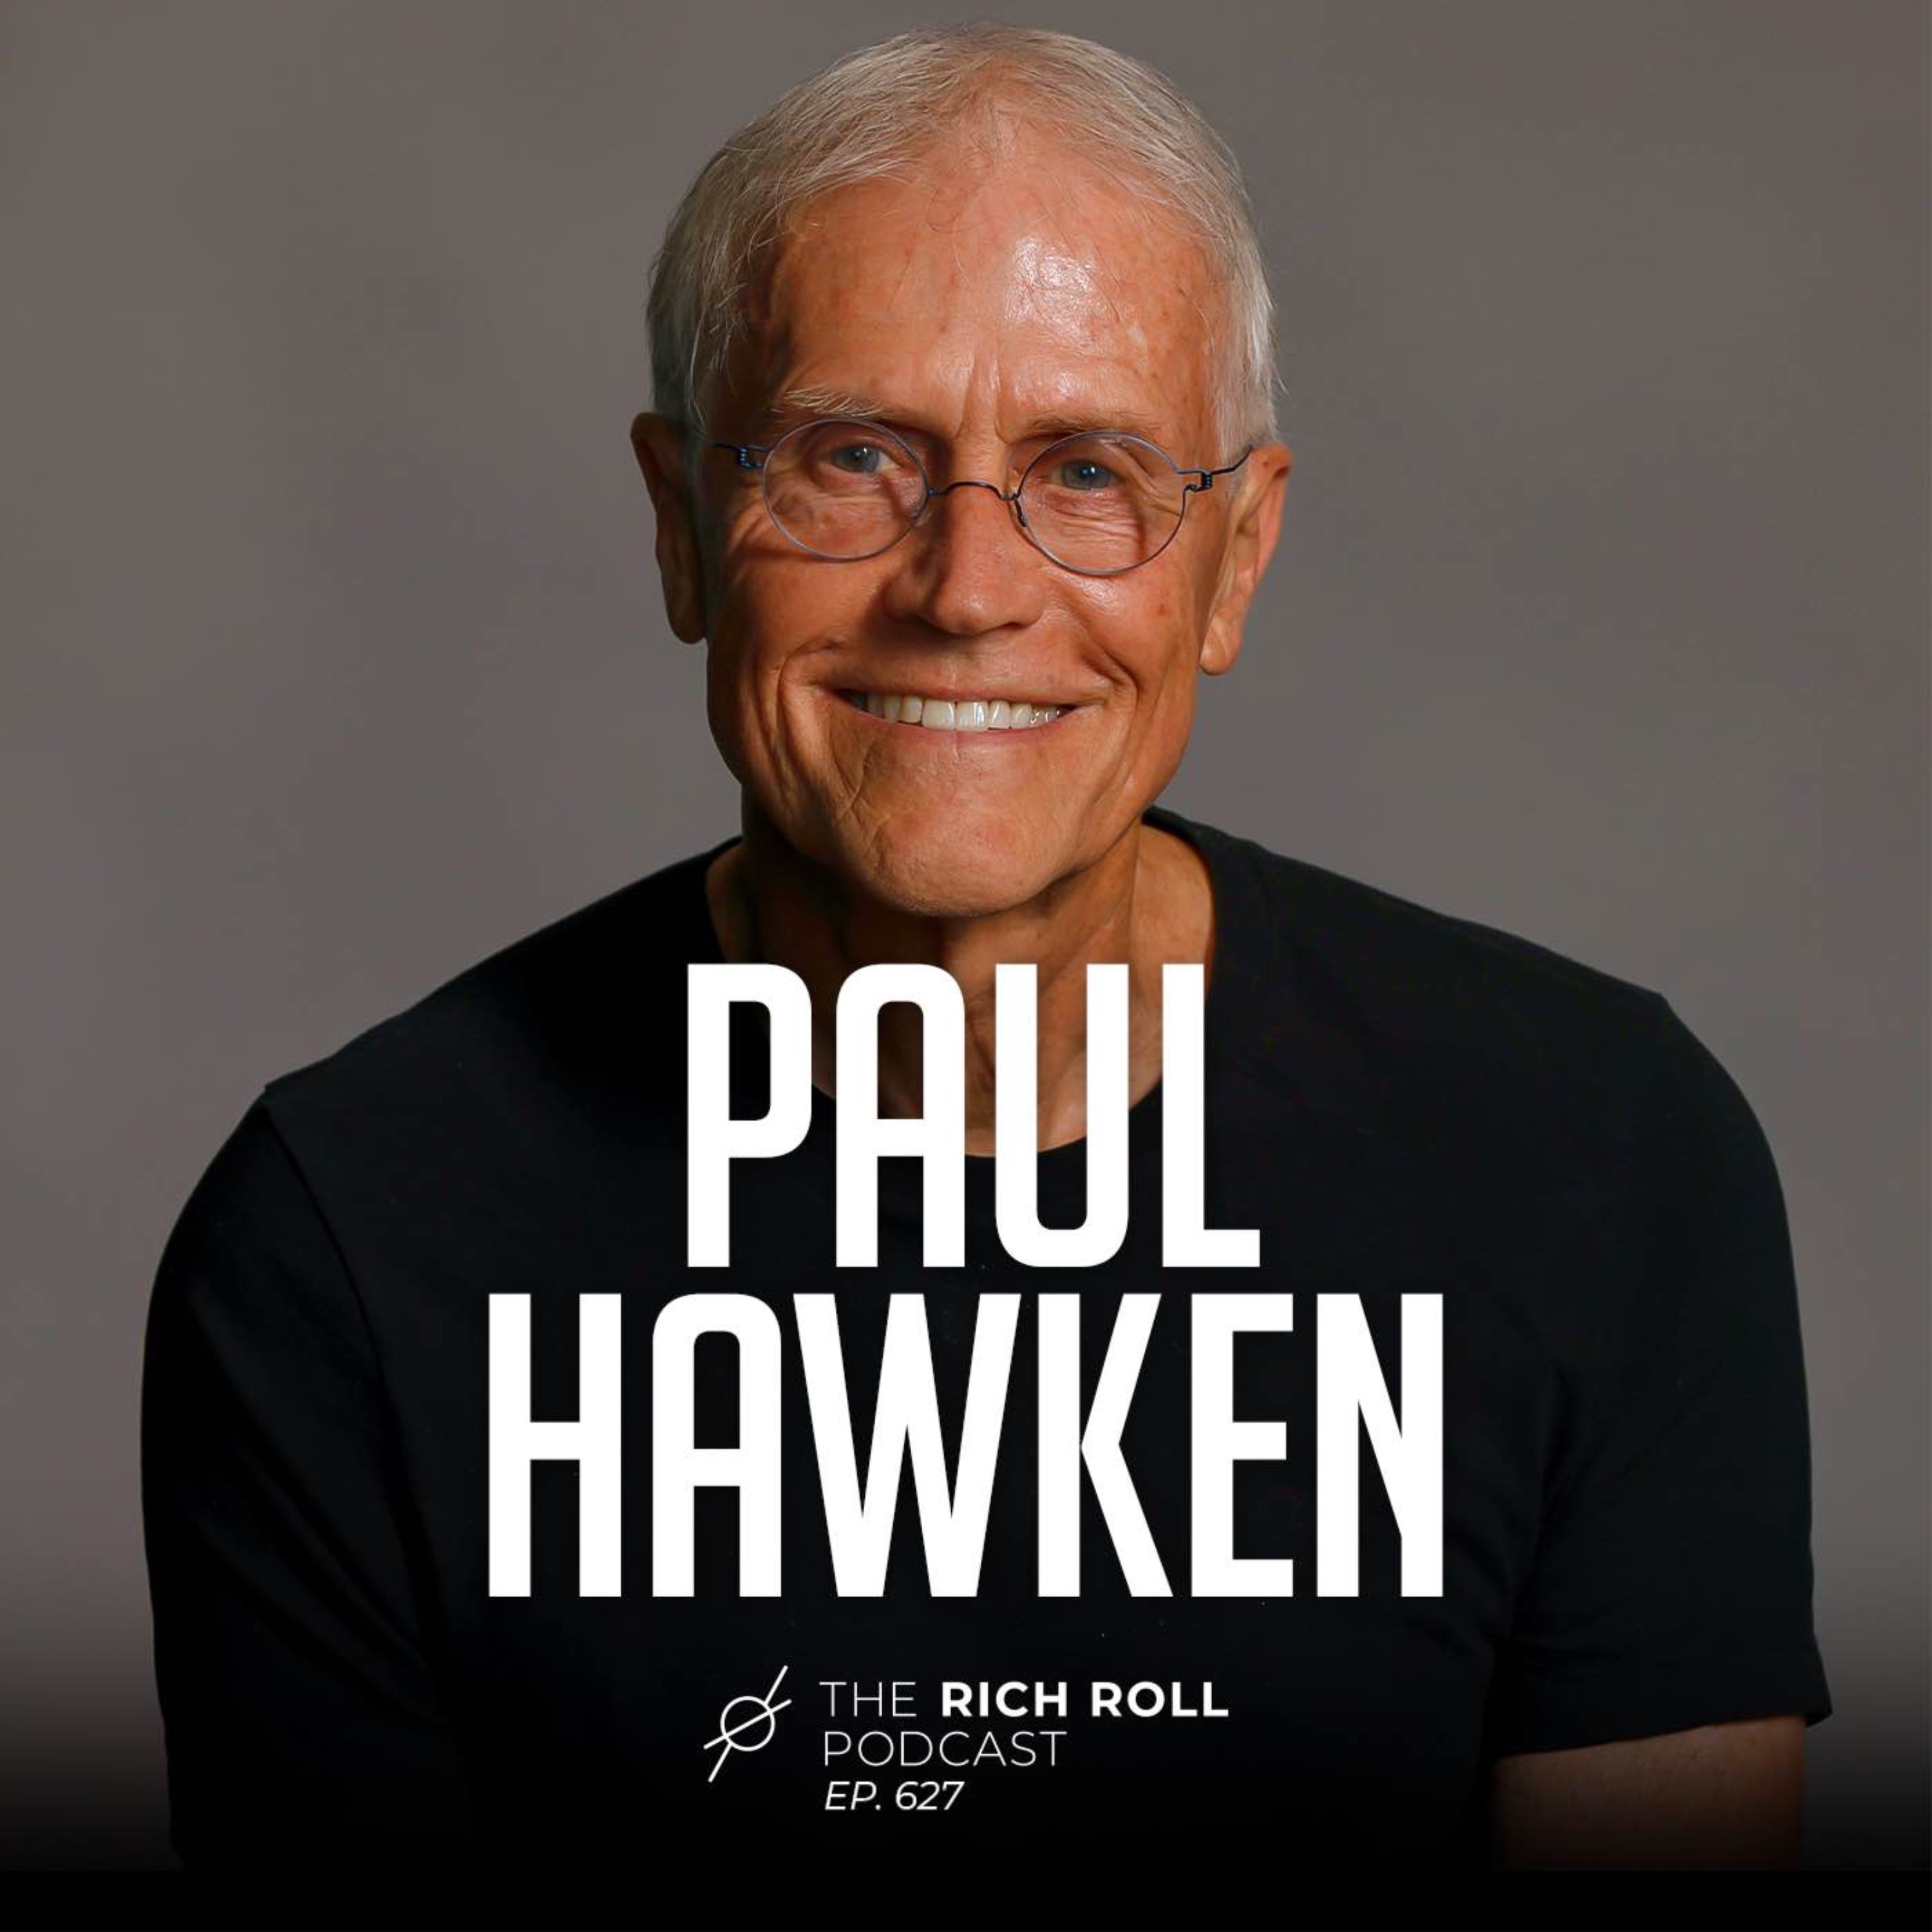 Paul Hawken: Ending The Climate Crisis In One Generation